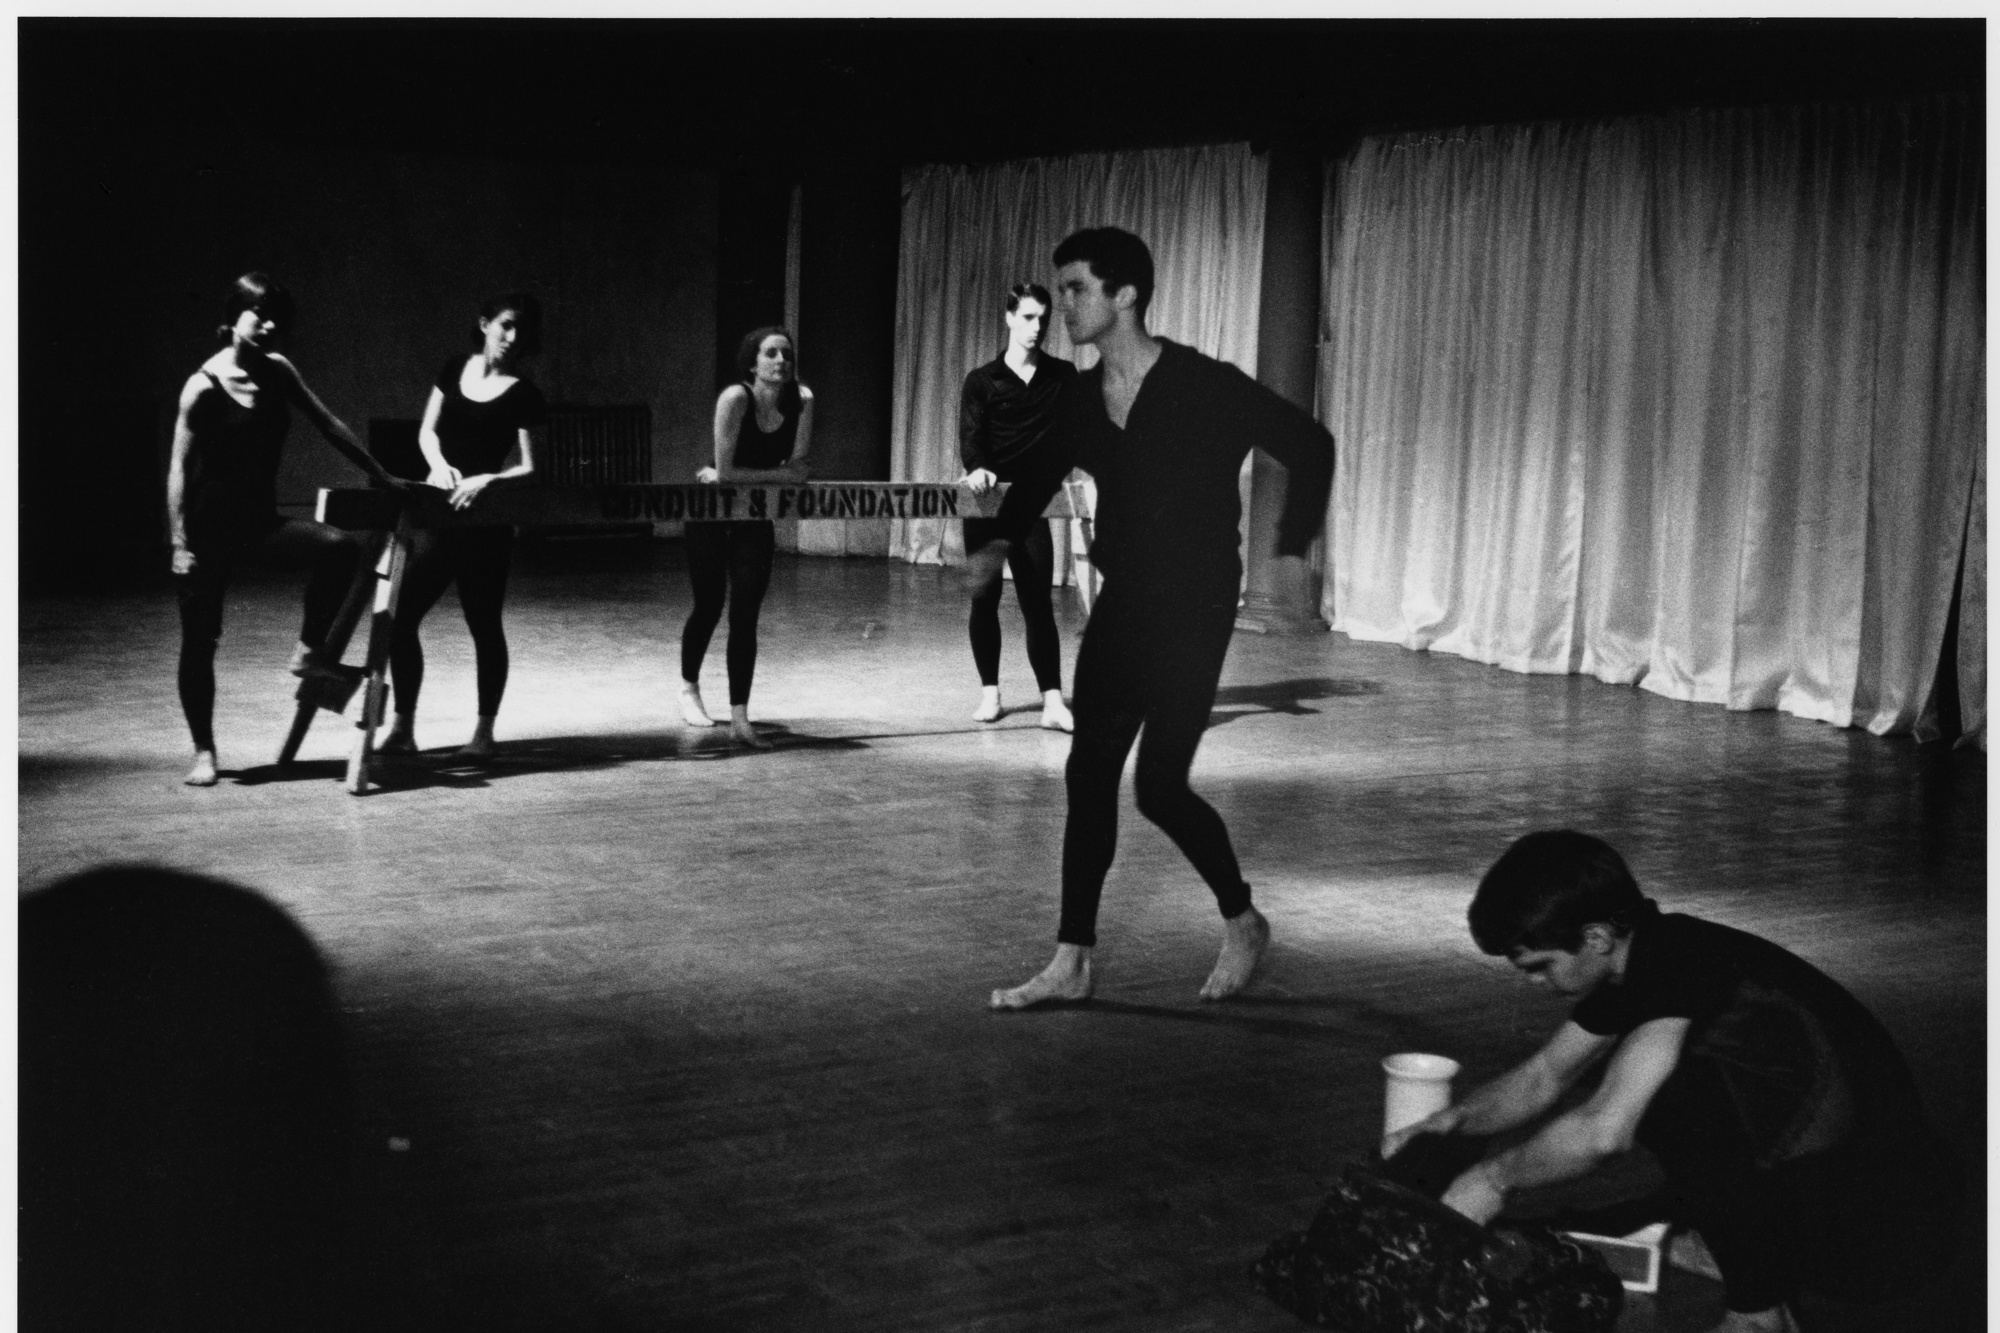 Peter Moore's photograph of Terrain, 1963. Performed at Judson Memorial Church, April 28, 1963. Pictured, from left: William Davis, Albert Reid (foreground); Yvonne Rainer, Judith Dunn, Trisha Brown, Steve Paxton (background). © Barbara Moore/Licensed by VAGA, New York, NY. Courtesy Paula Cooper Gallery, New York